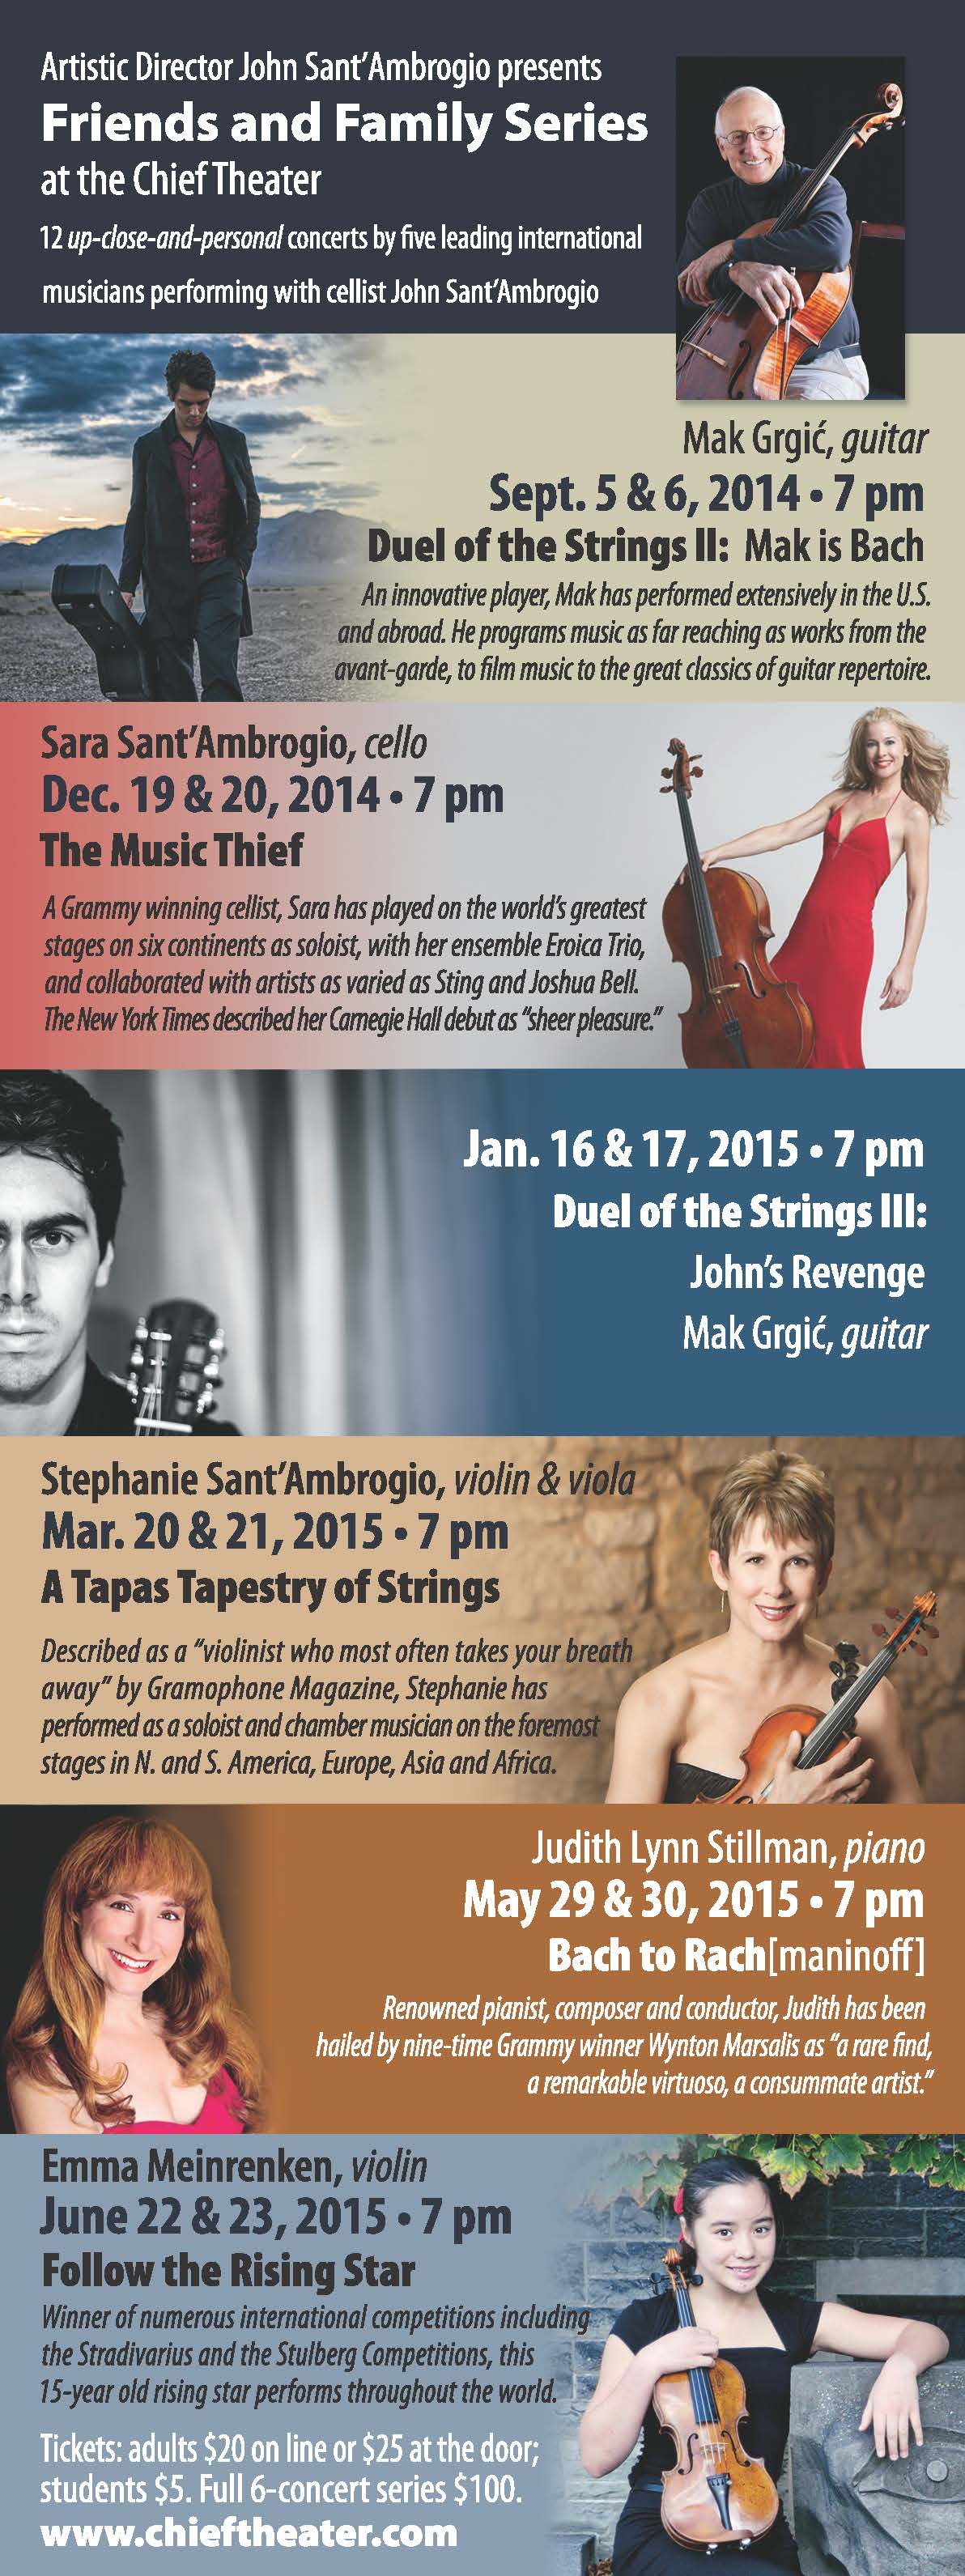 cultural music in Steamboat, Chief Theater, performances, Grammy winners, highly acclaimed musicians,